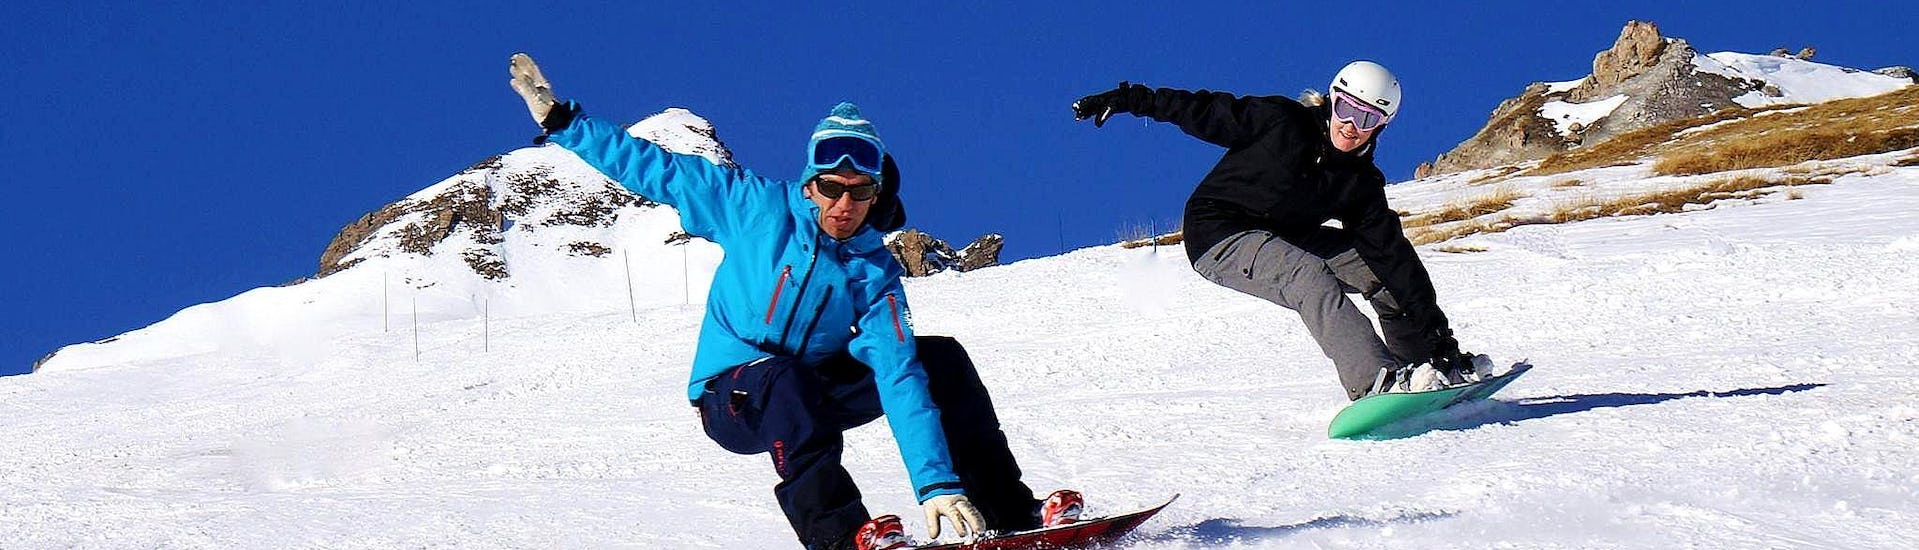 A snowboarder is following their instructor from the ski school Sncool in Tignes on a snowy slope while grabbing their board during theirPrivate Snowboarding Lessons - All Levels & Ages.